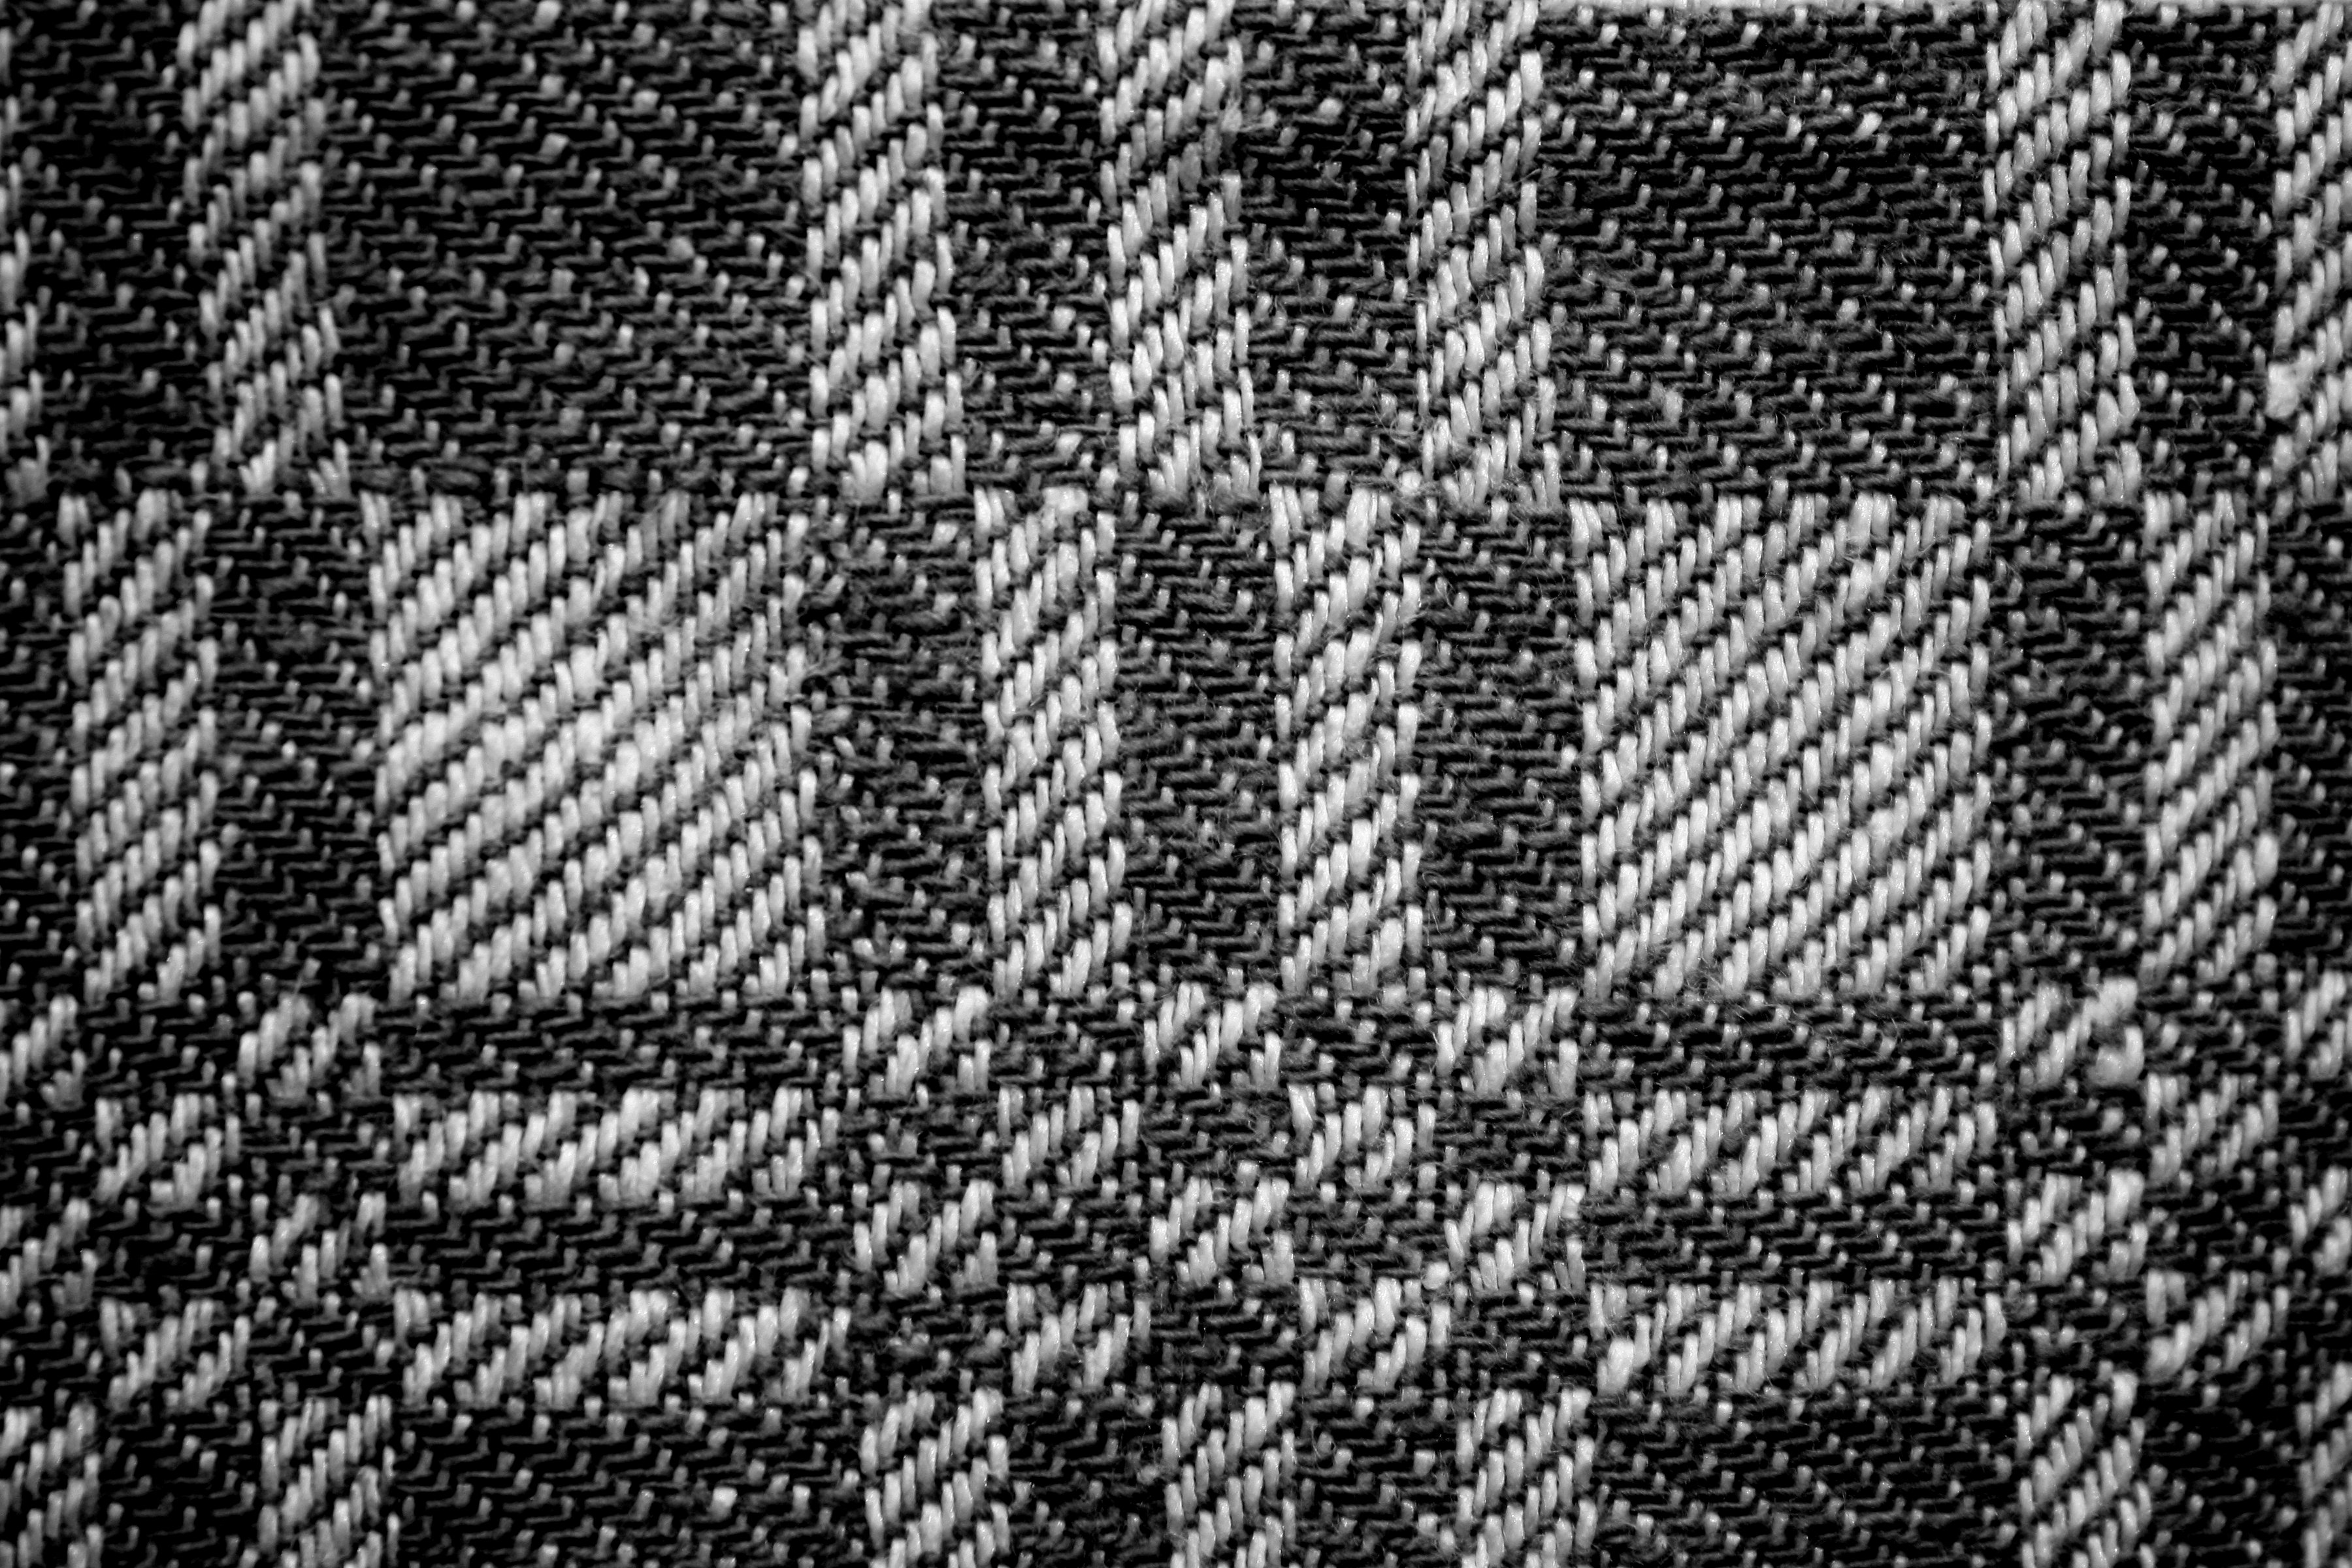 Black And White Woven Fabric Texture With Squares Pattern